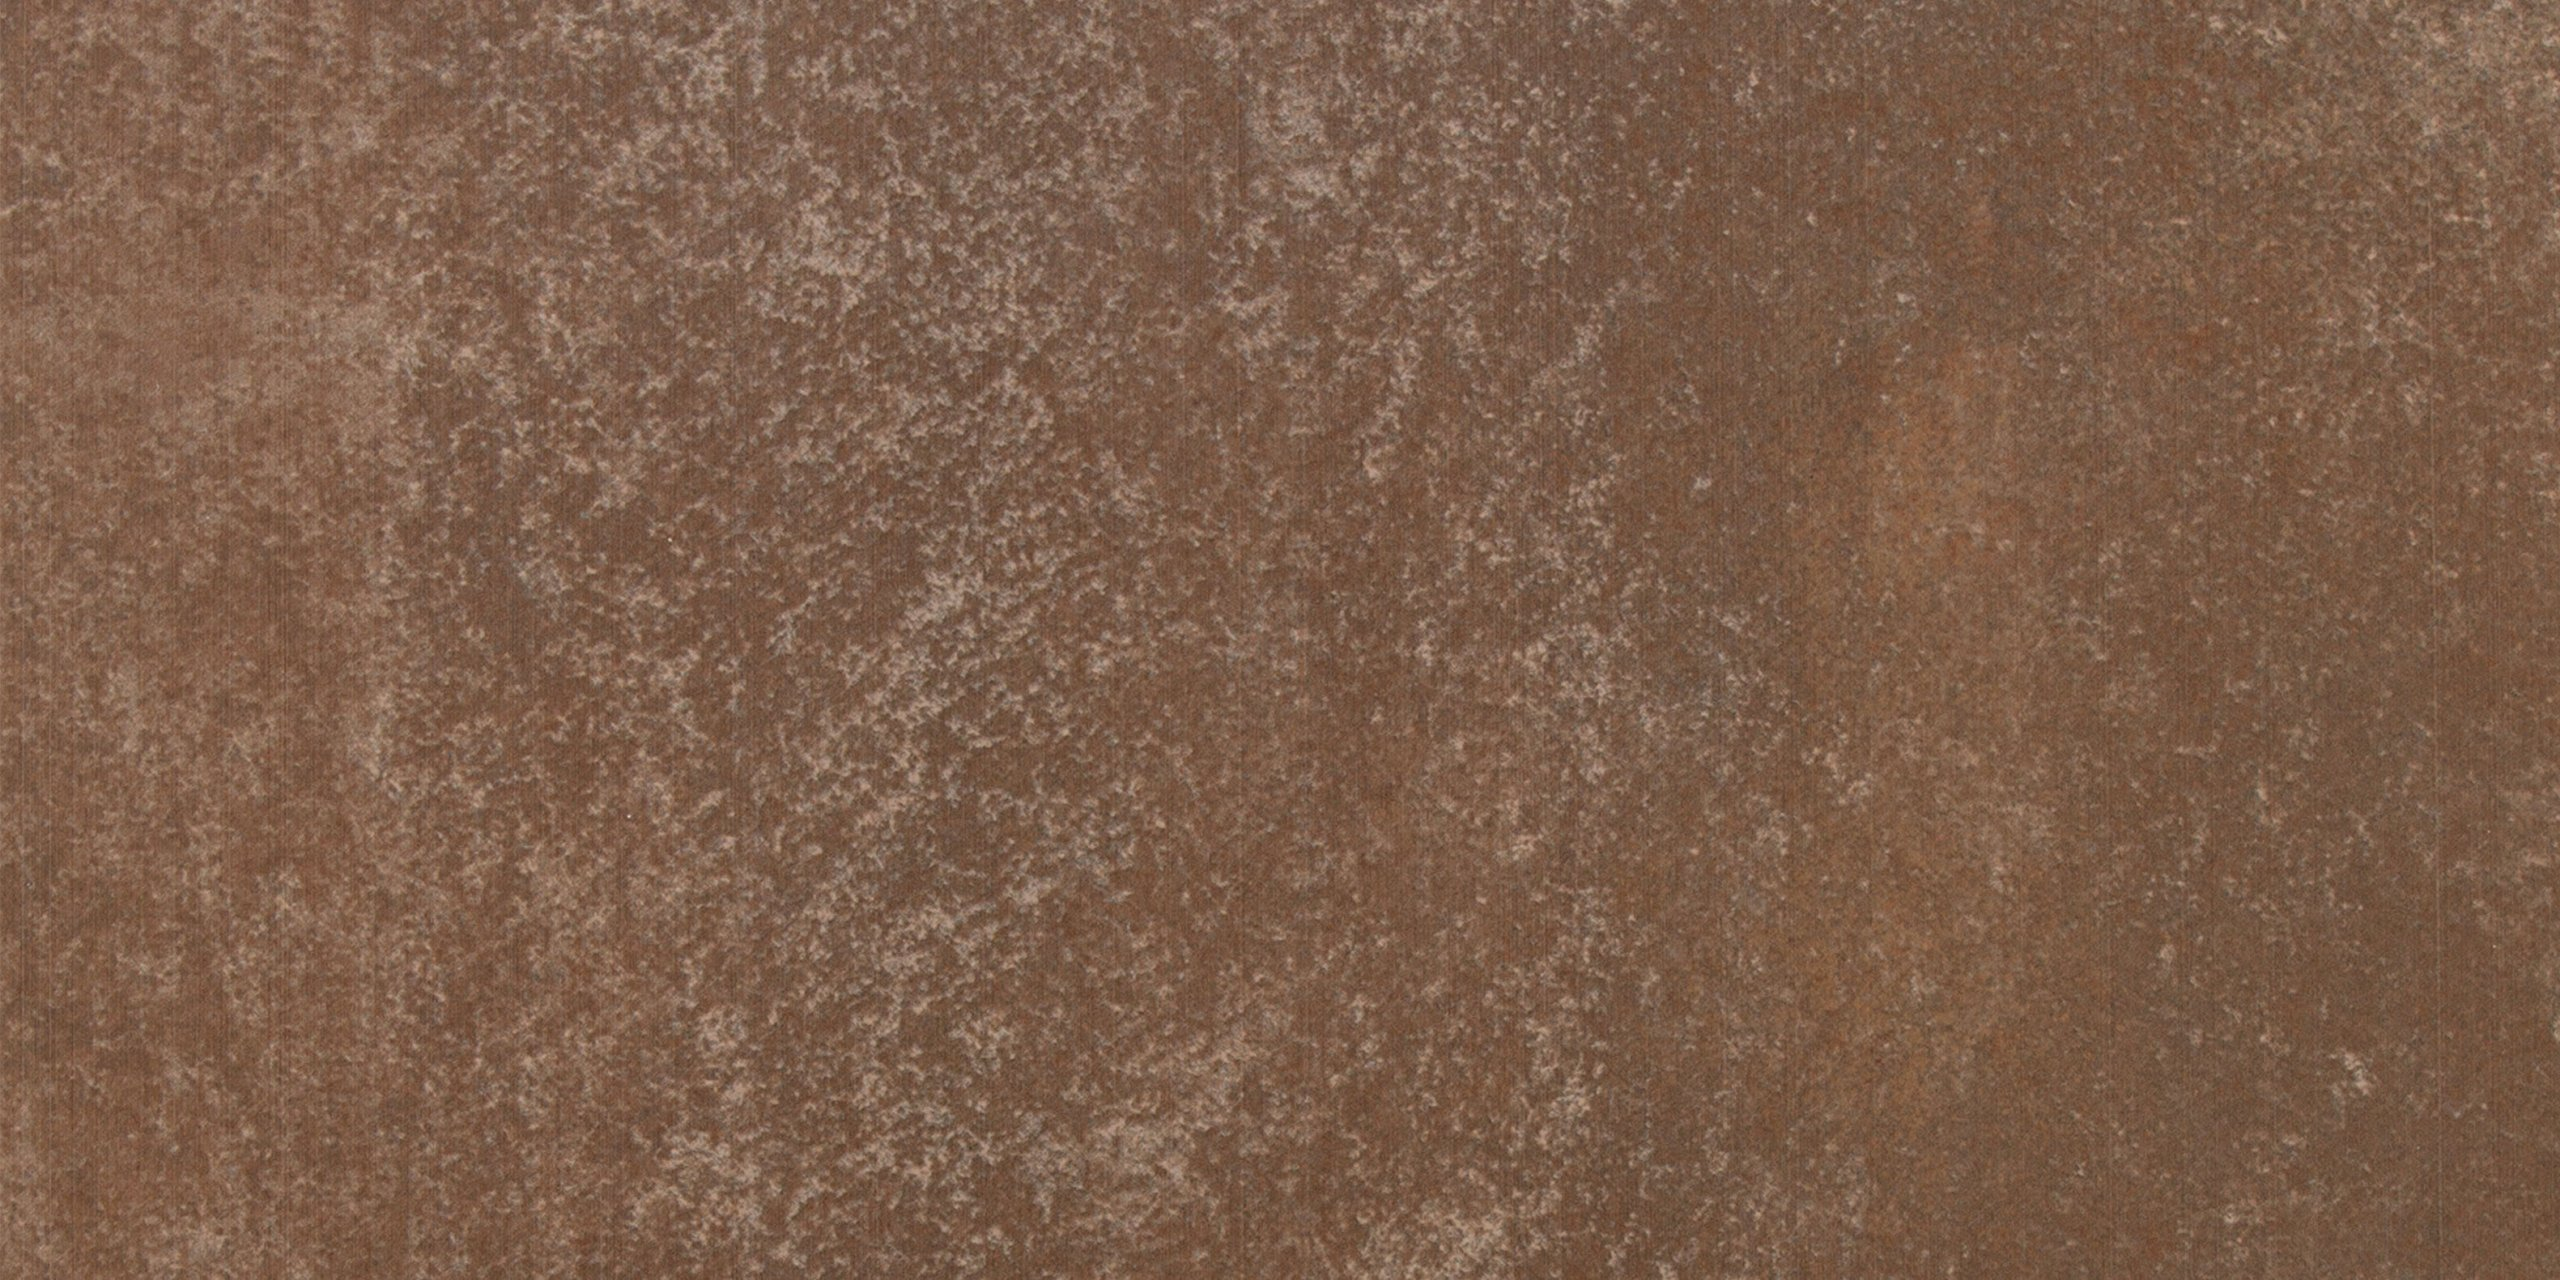 Fiandre USA TNS08M124 Contemporary 12'' x 24'' New Stone Penny Stone Honed Porcelain Tile (8 Pack), Brown